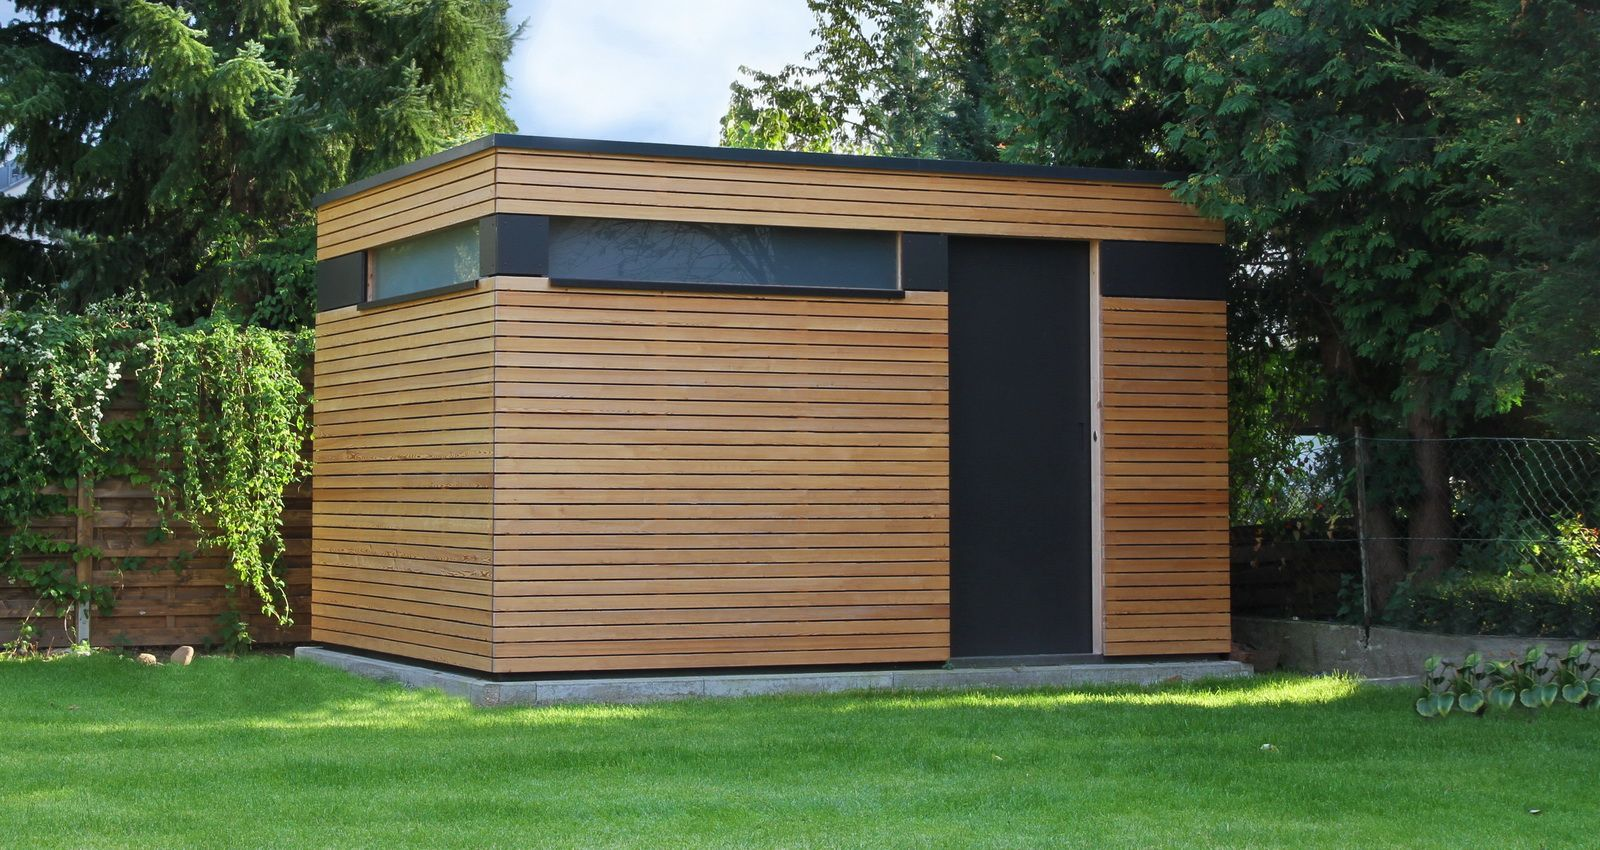 Gartenlaube Modern Wooden Garden Shed In Contemporary Design With Small Horizontal